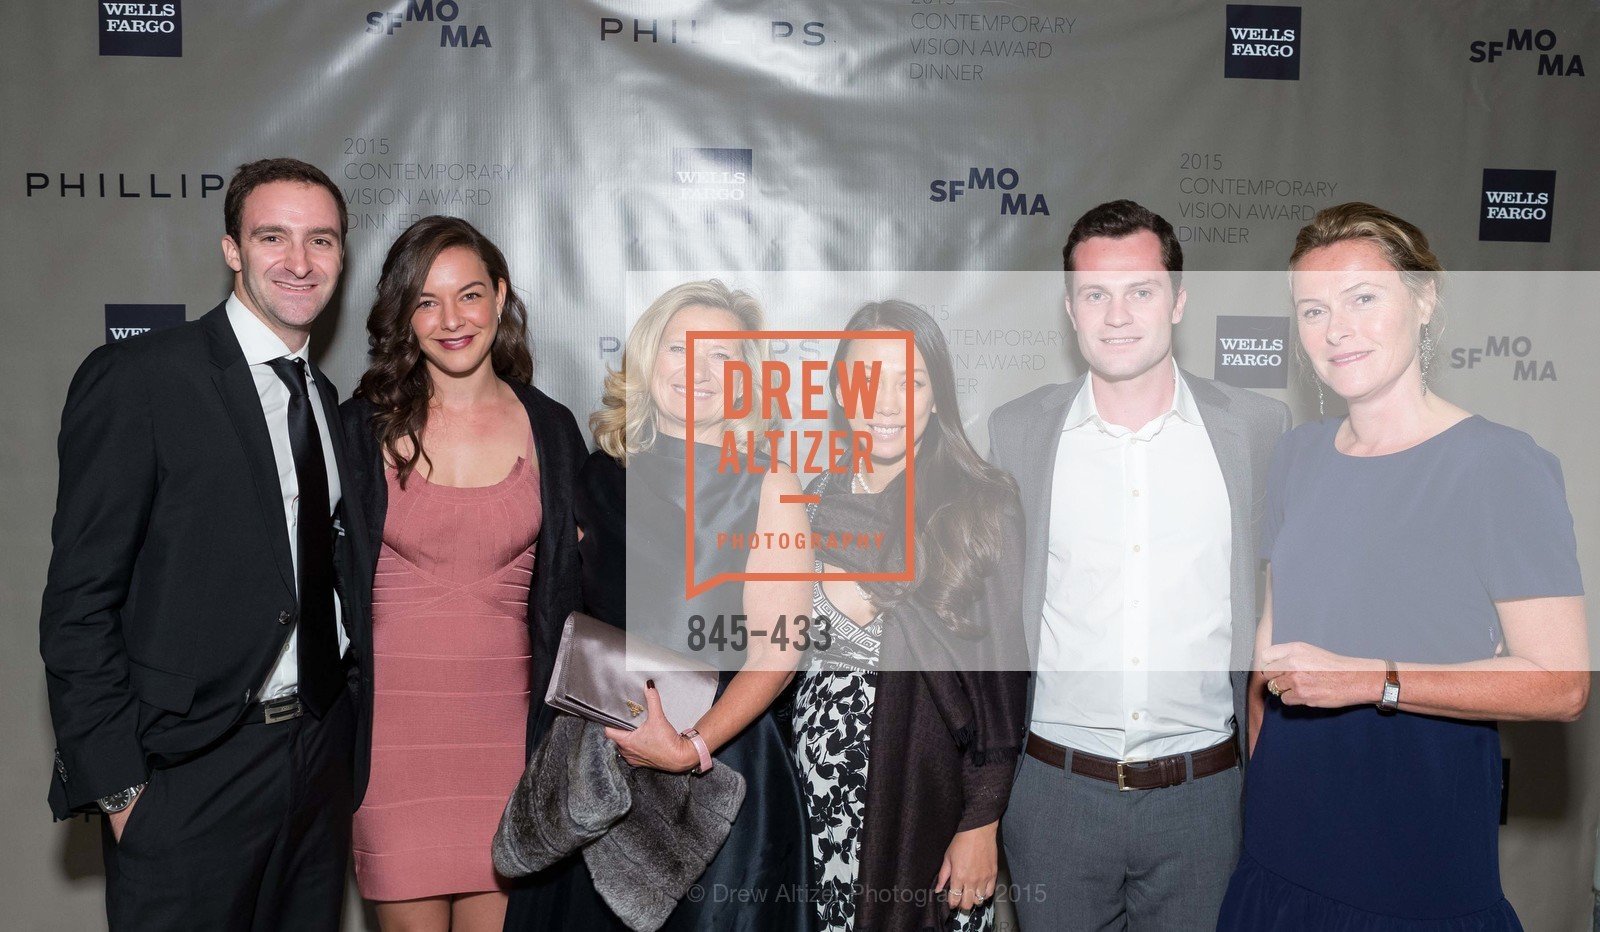 Cedric Schwab, Talia Touboul, Florence Buatois, Elena Gao, Matthew Decandia, Corine DeHemptinne, SFMOMA Contemporary Vision Award, Regency Ballroom. 1300 Van Ness, November 3rd, 2015,Drew Altizer, Drew Altizer Photography, full-service agency, private events, San Francisco photographer, photographer california